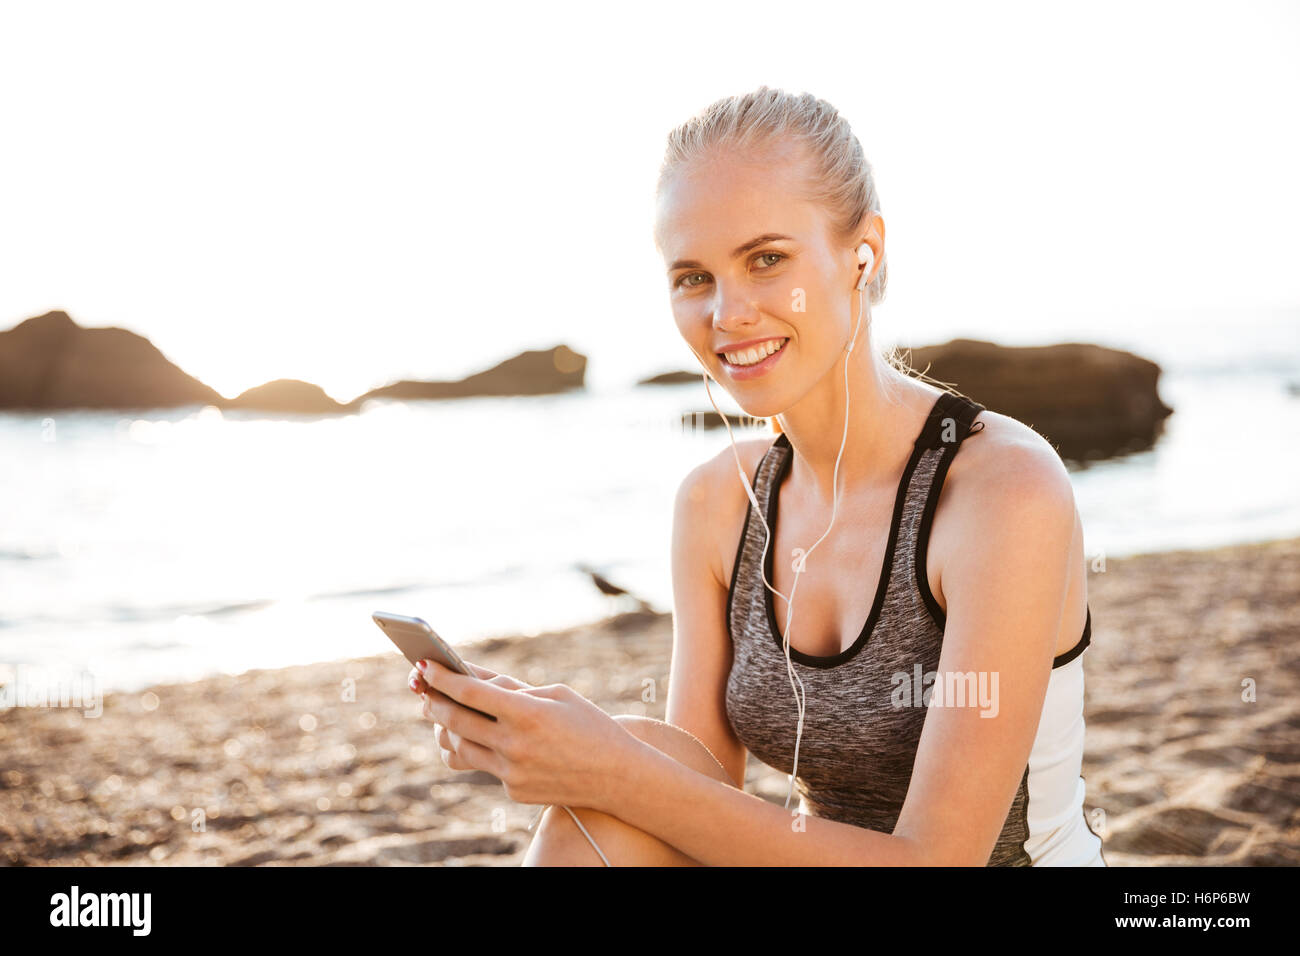 Close up portrait of a smiling blonde sports woman with earphones sitting on beach - Stock Image